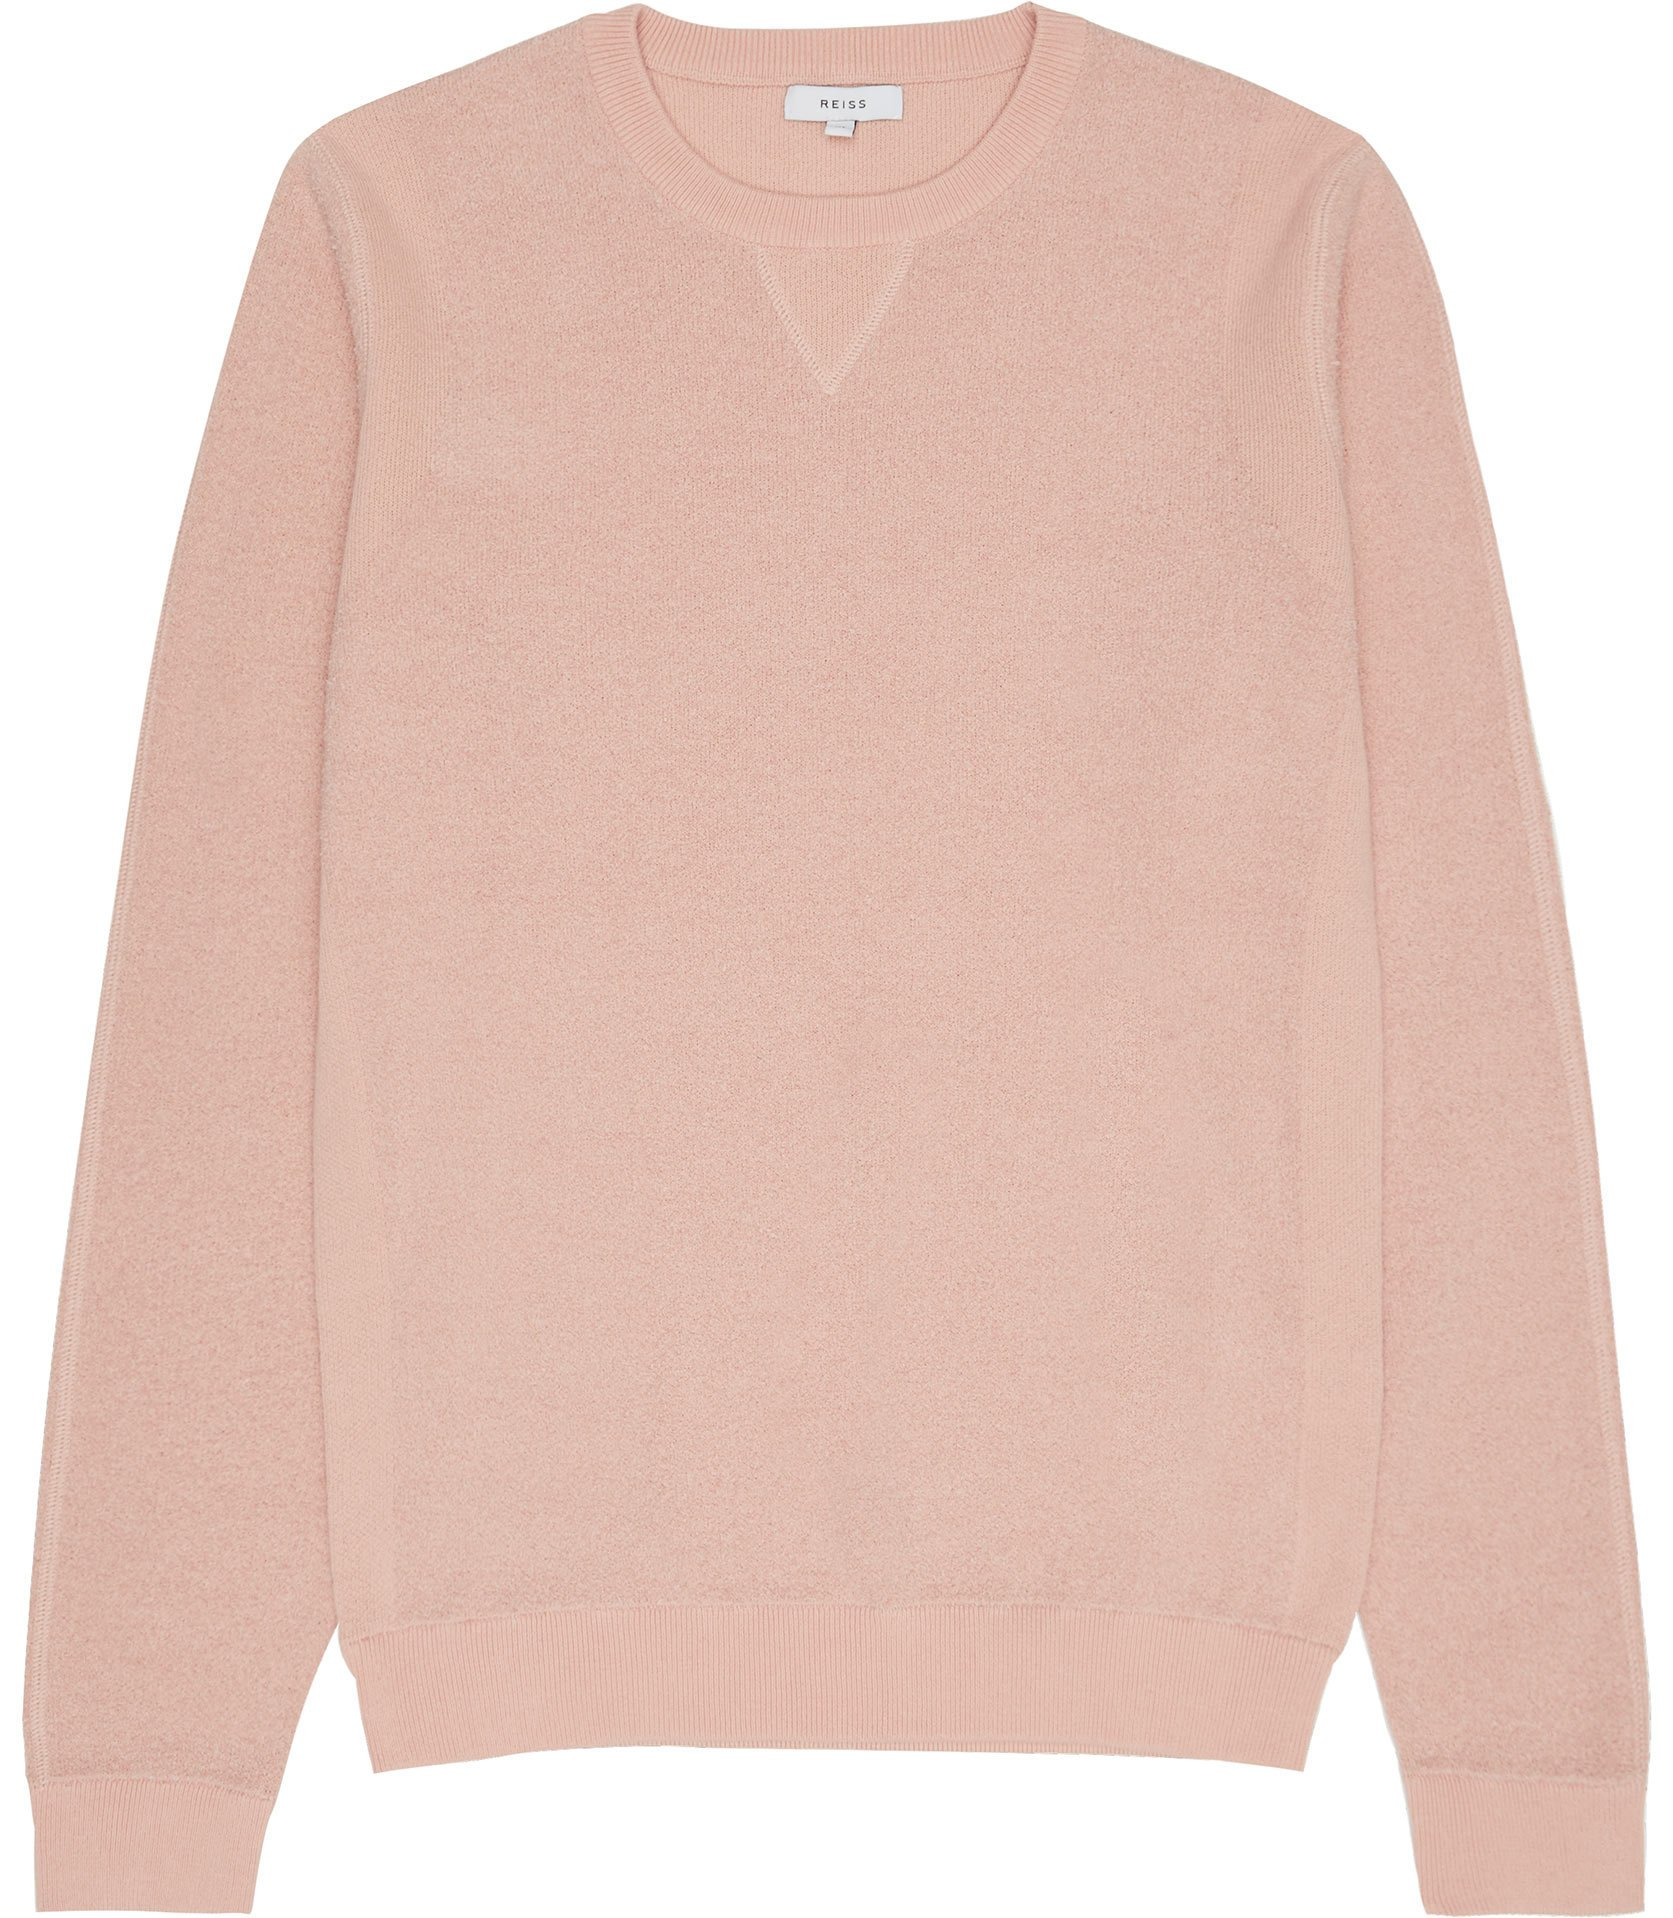 Reiss Soft Pink Laurence Textured Crew Neck Jumper